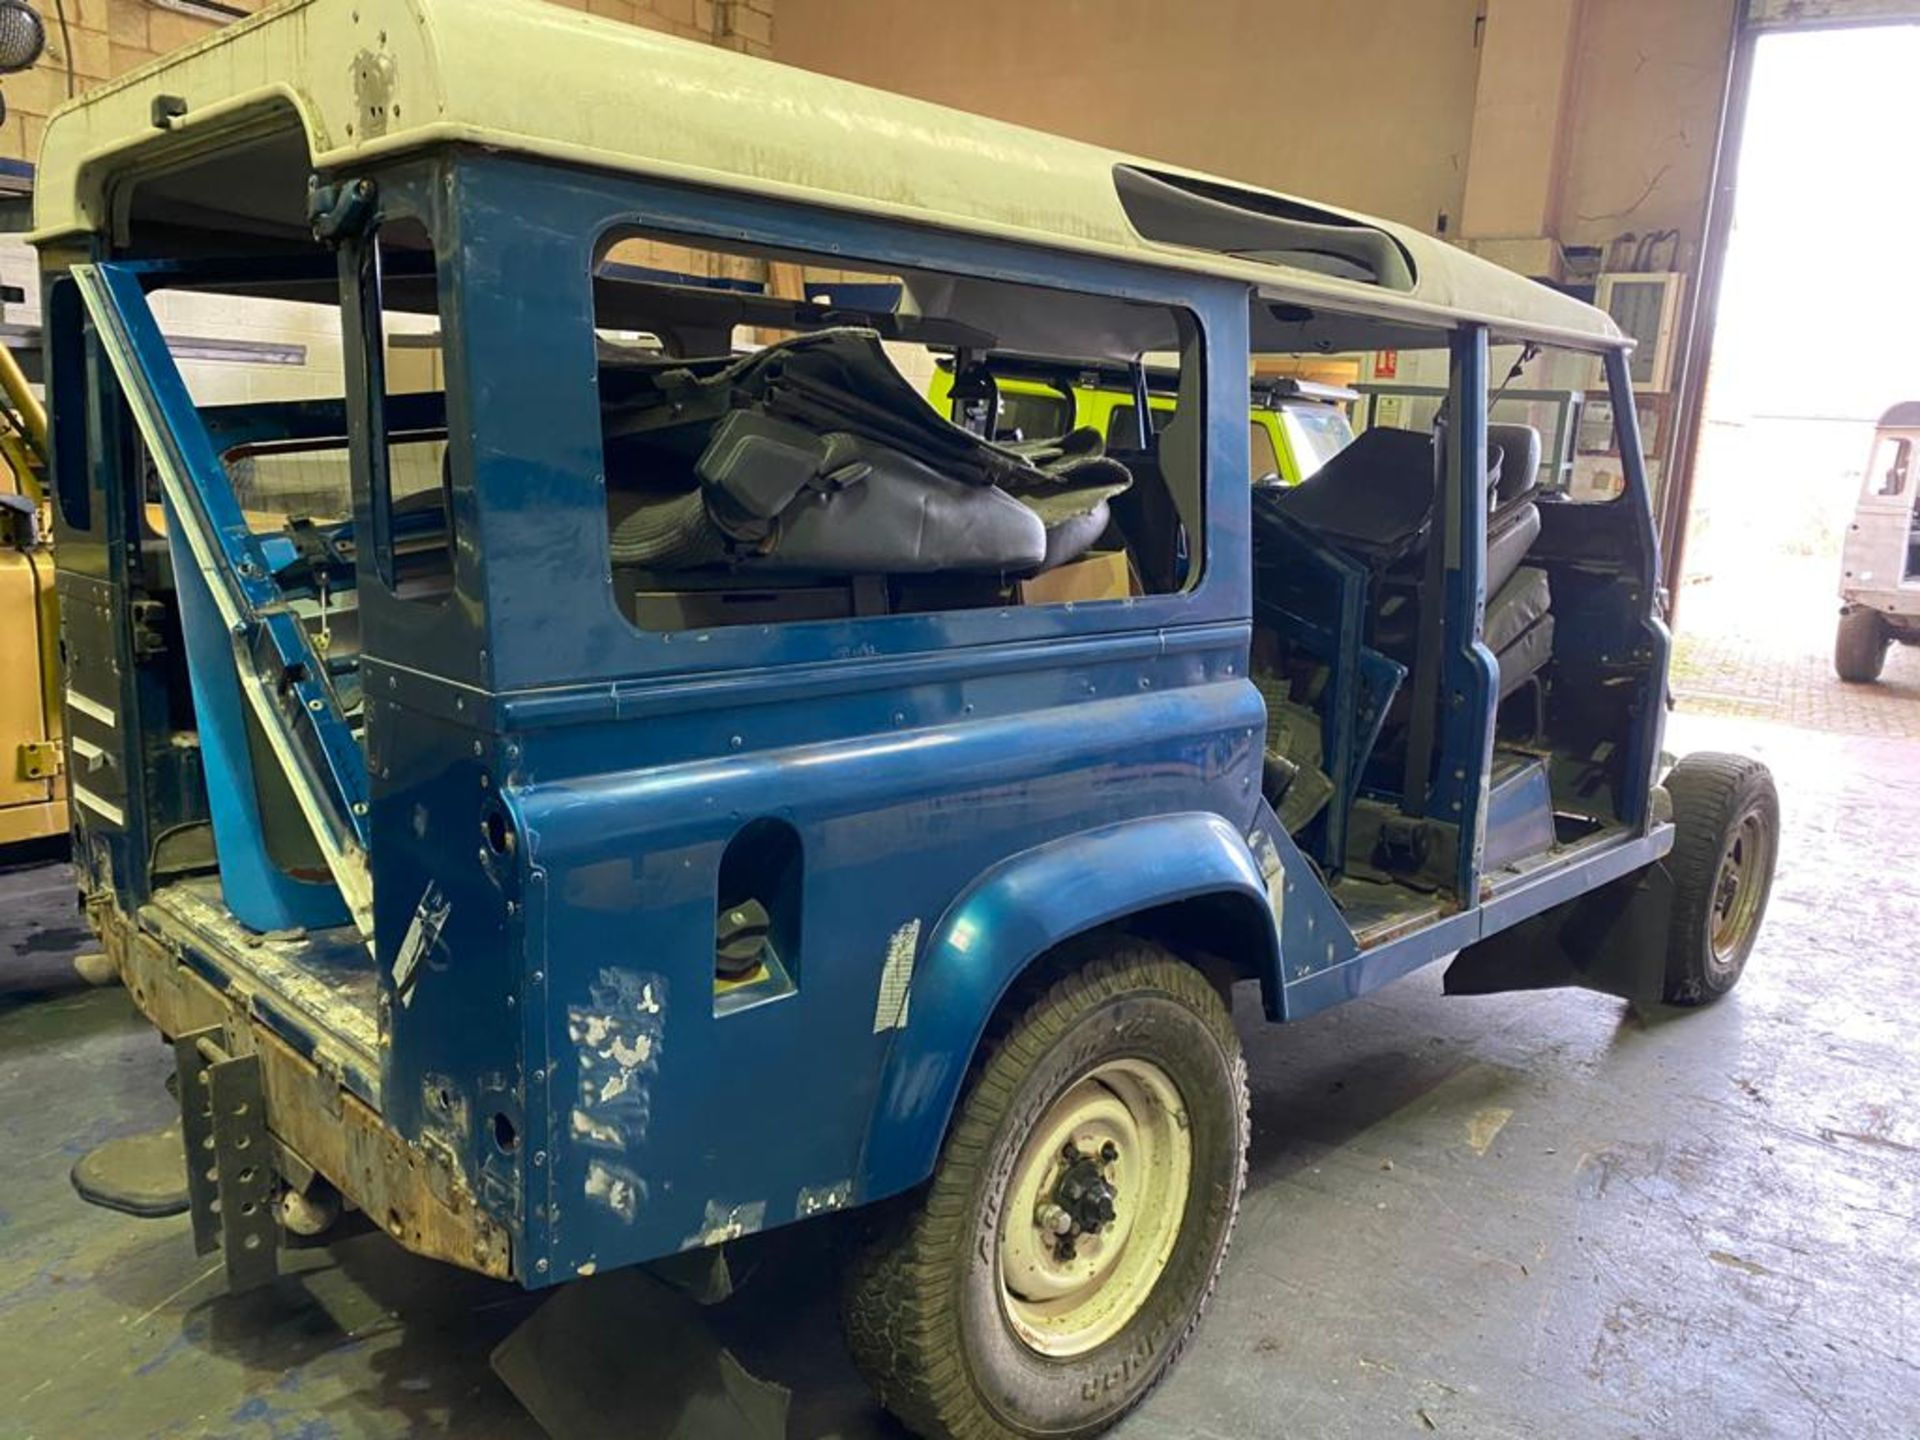 Land Rover 110 County, 300 TDI Engine Appears Mostly Complete - No Bumper, Bonnet, Glass etc As - Image 2 of 26